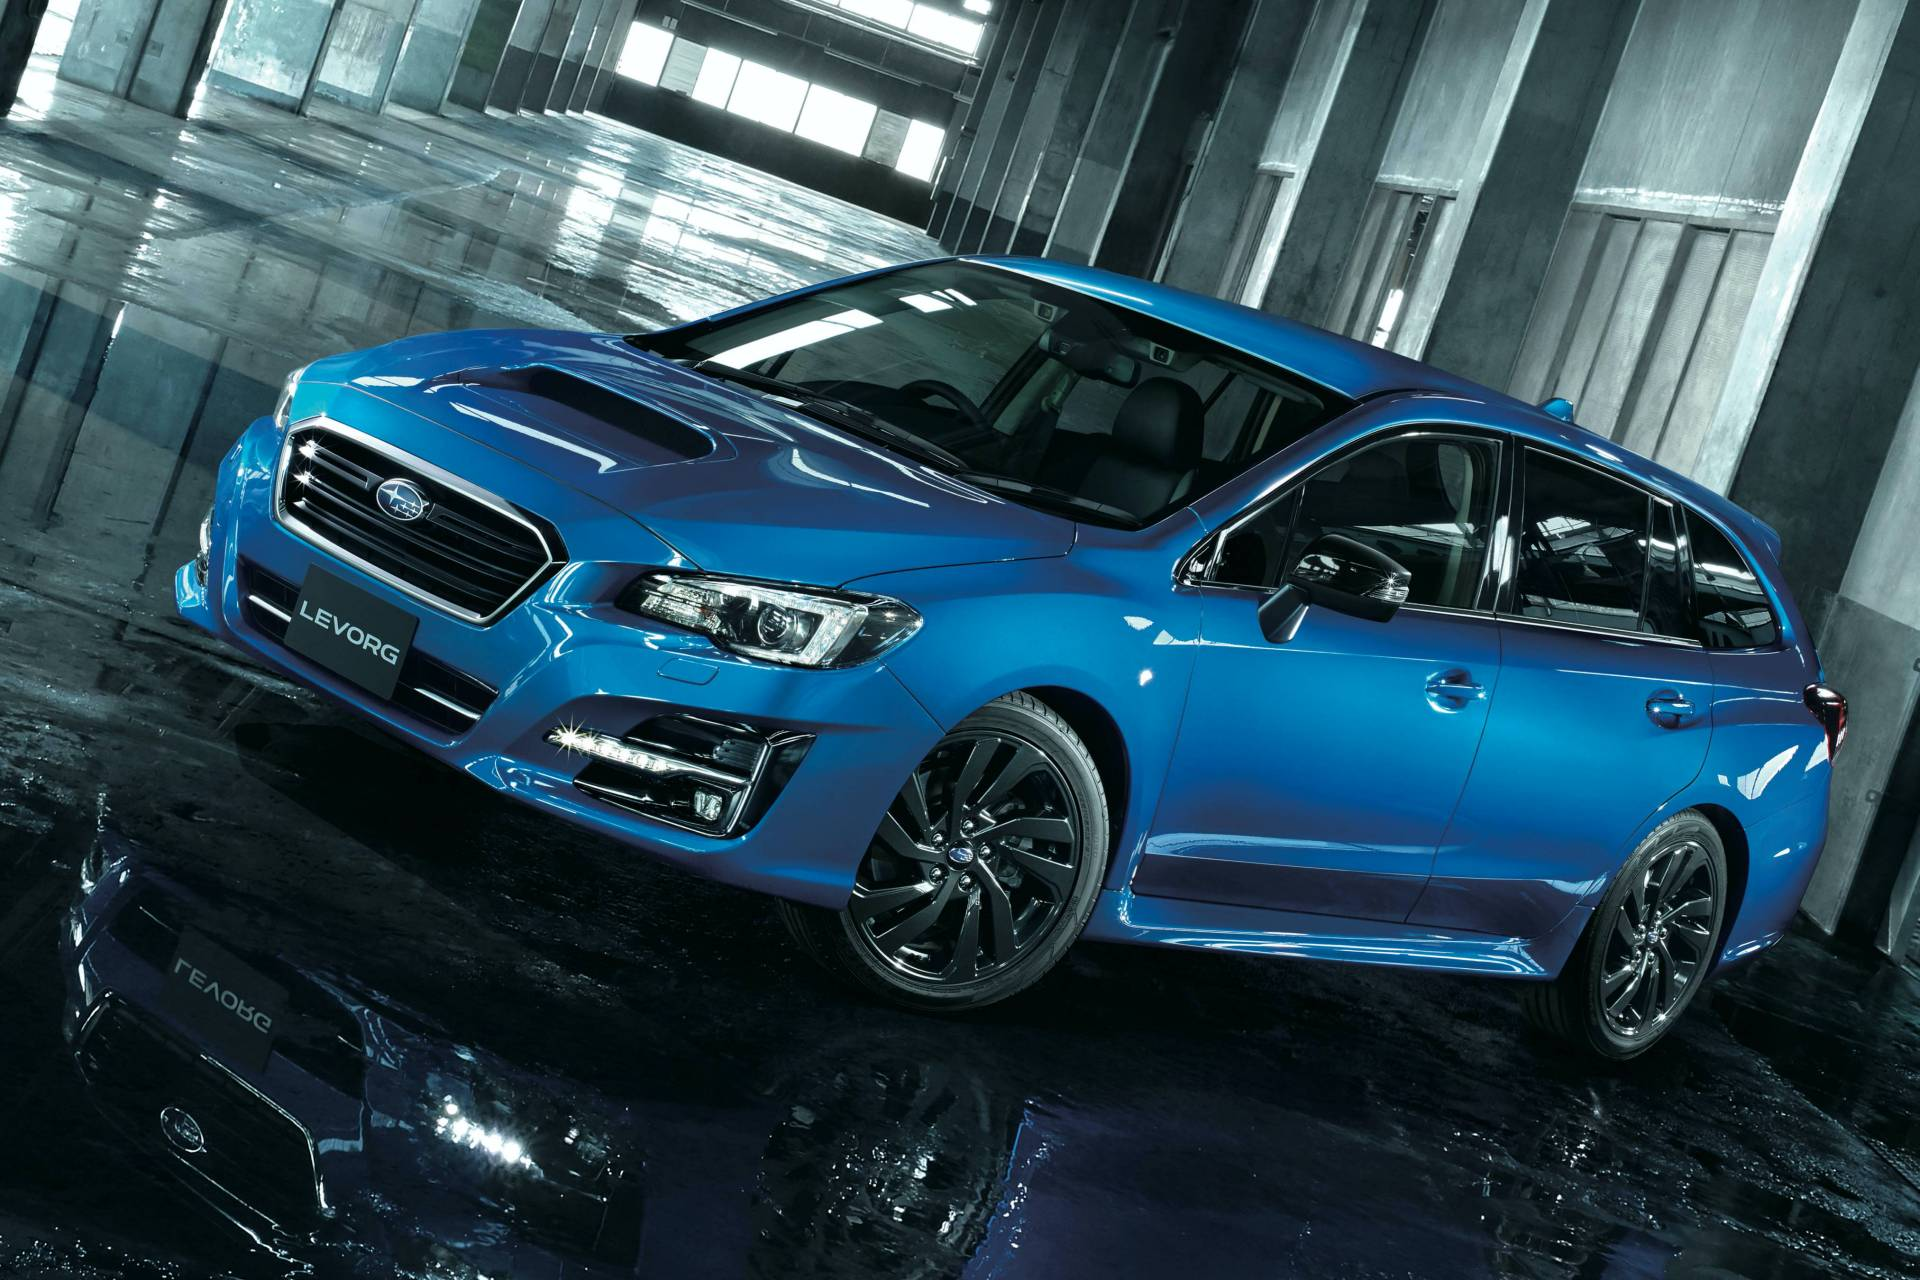 Subaru-Levorg-2.0GT-EyeSight-V-Sport-2